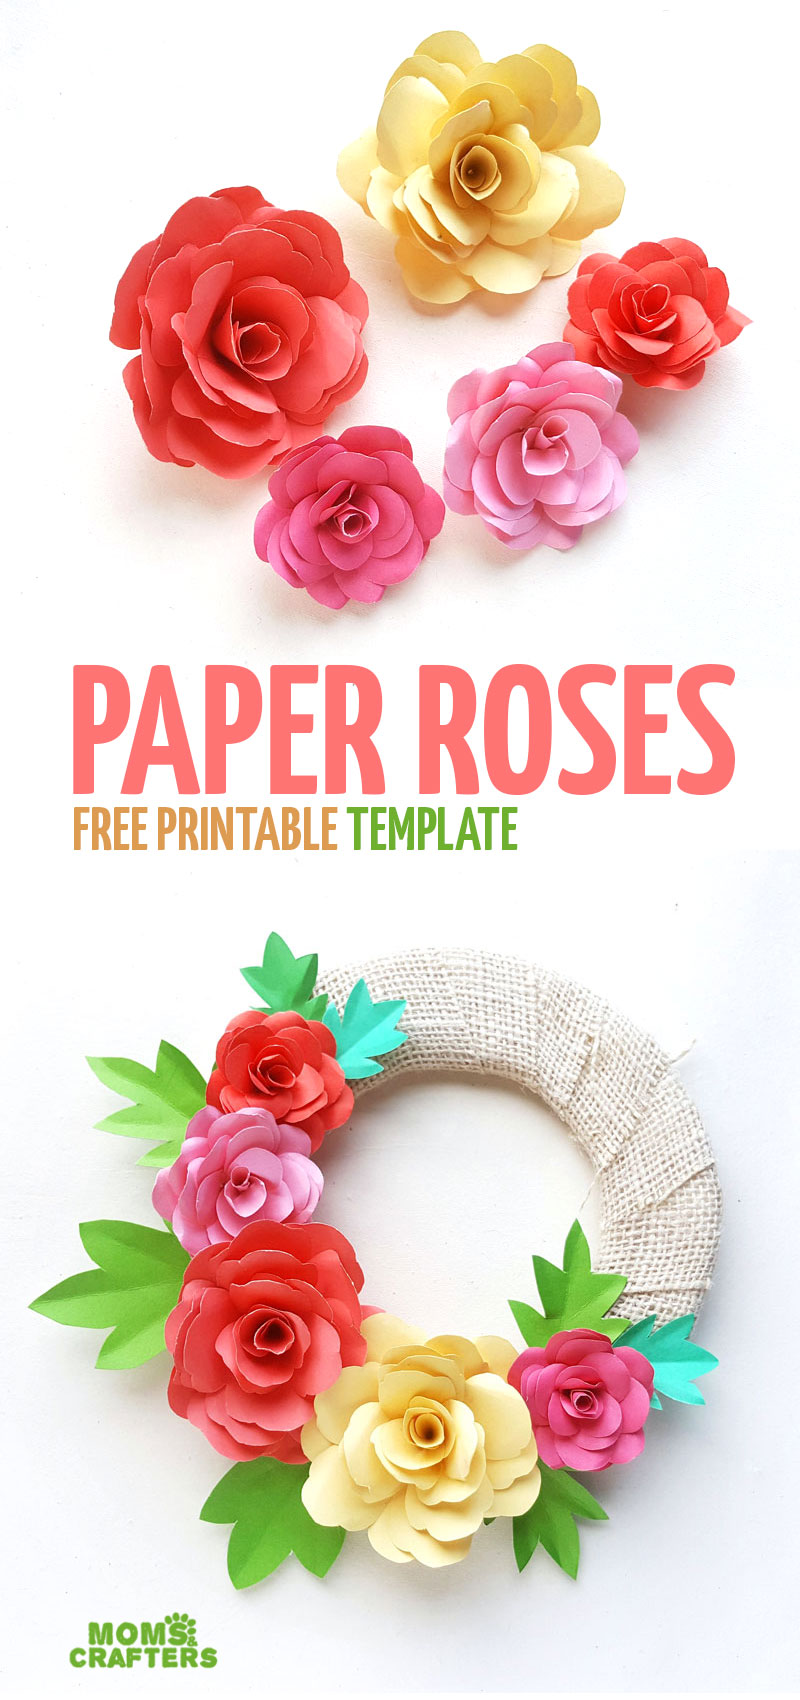 Click to learn how to make your own DIY paper roses and turn them into a beautiful Spring Wreath for Easter - or not! this fun DIY paper flower template is perfect for beginners and teens